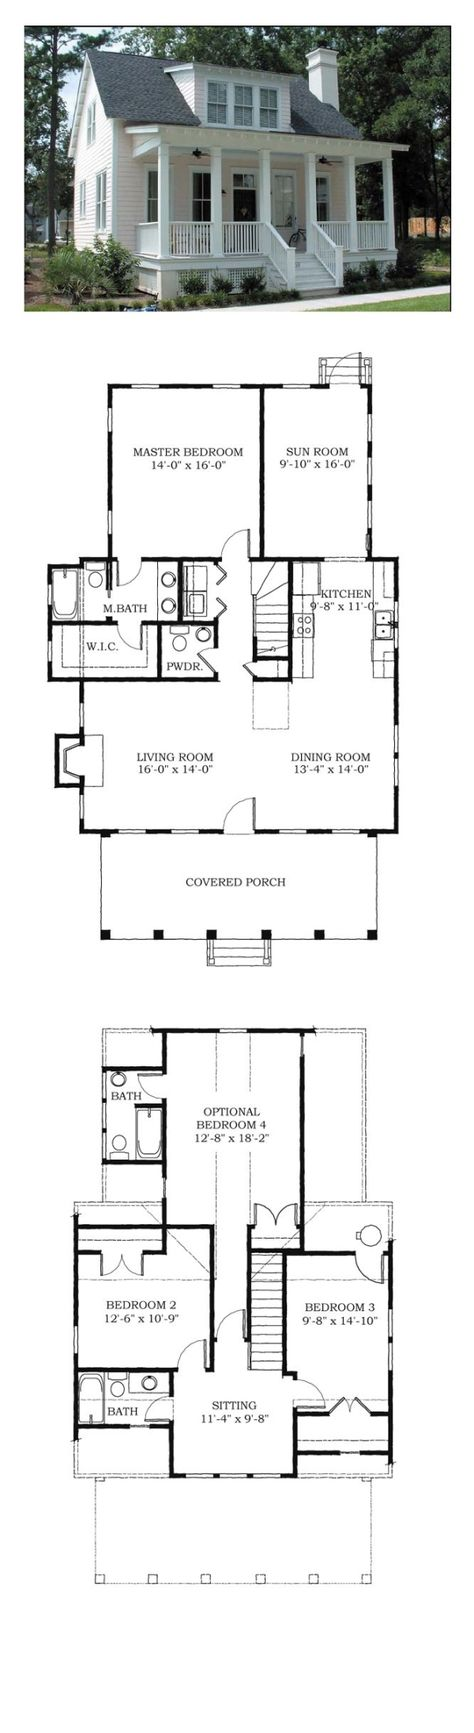 Dual Master Bedroom Floor Plan Cool Home Decorations Design list of things